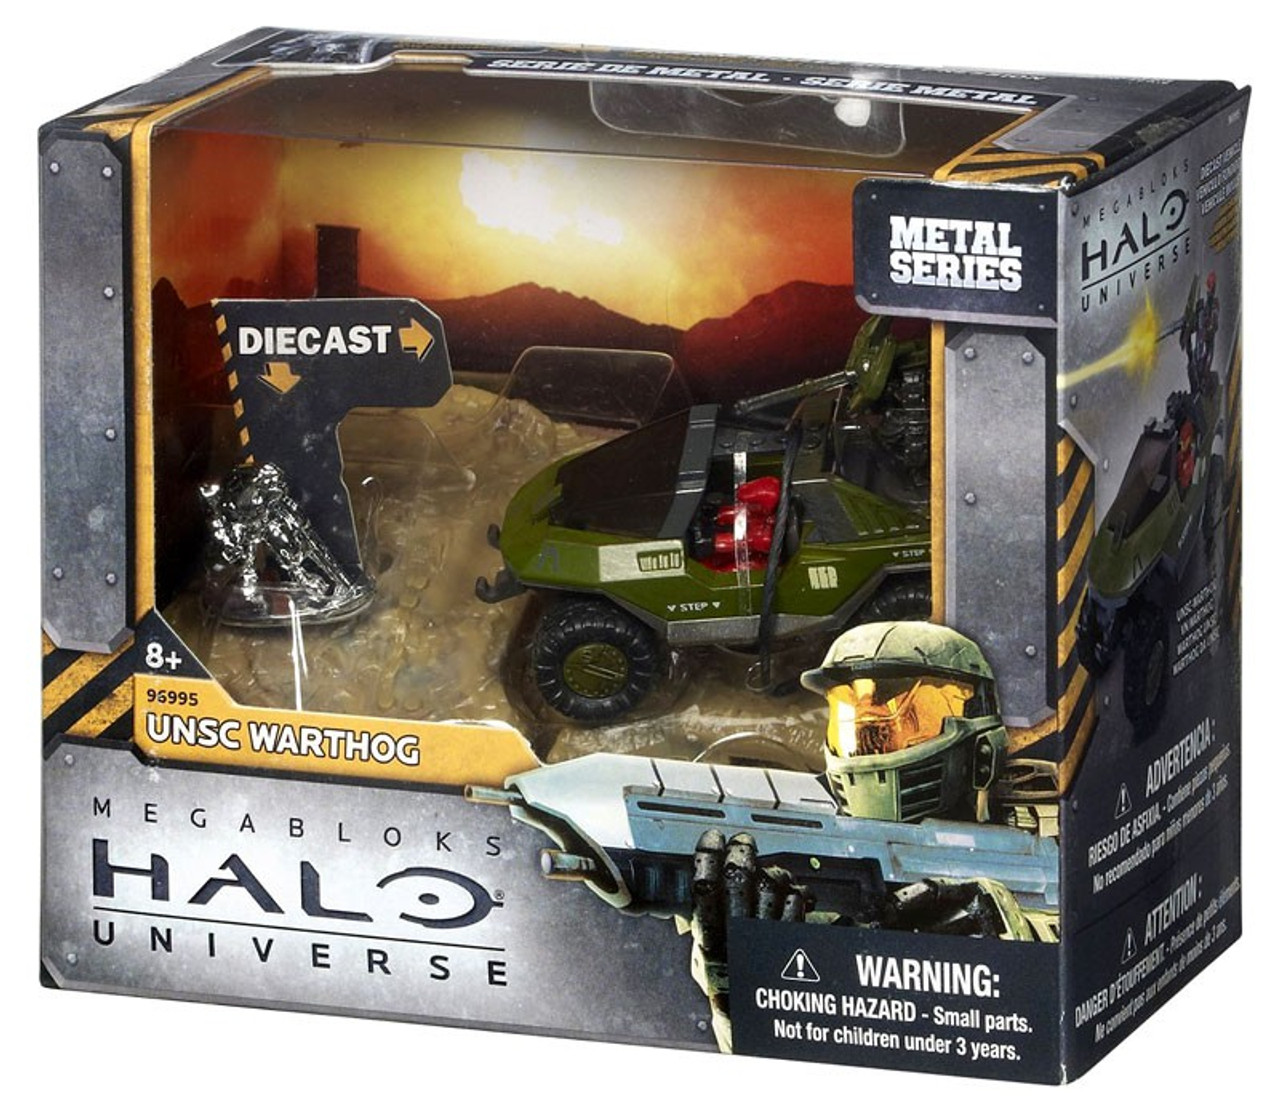 Mega Bloks Halo Metal Series UNSC Warthog Set #96995